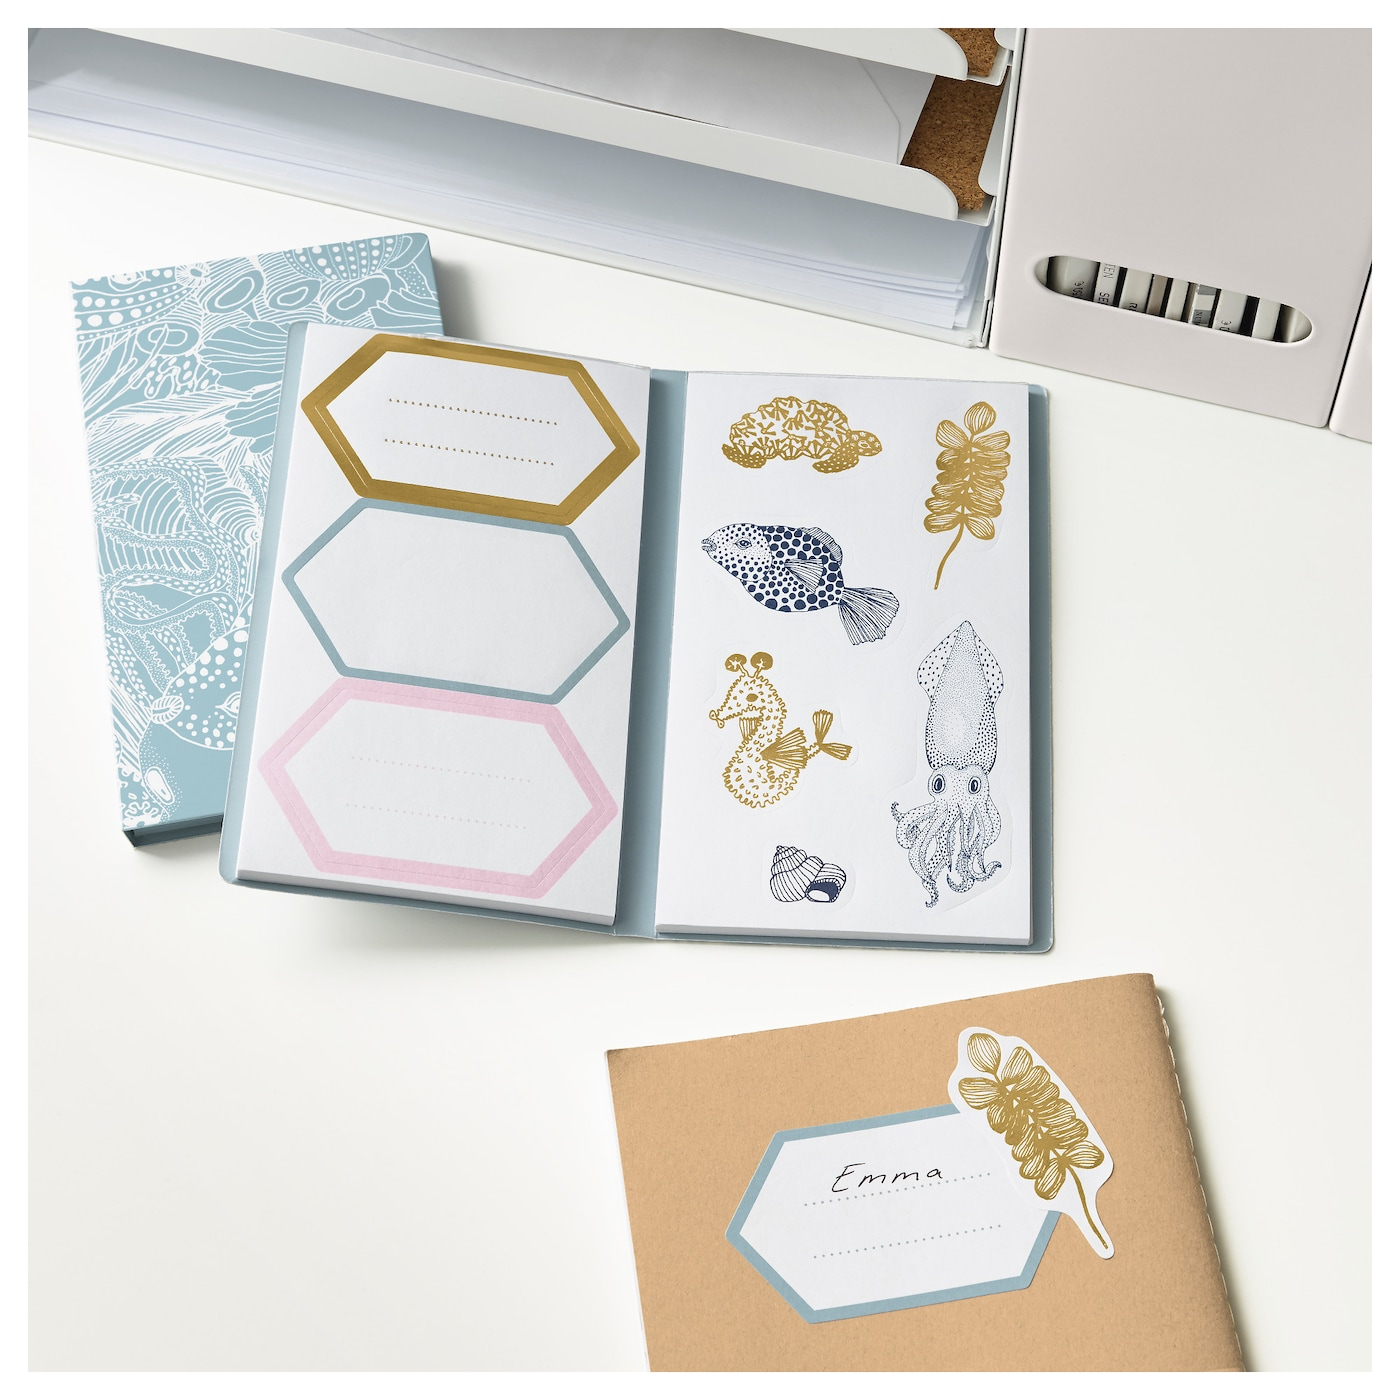 IKEA EKLOG folder with stickers Self-adhesive stickers which you can use to decorate your presents.